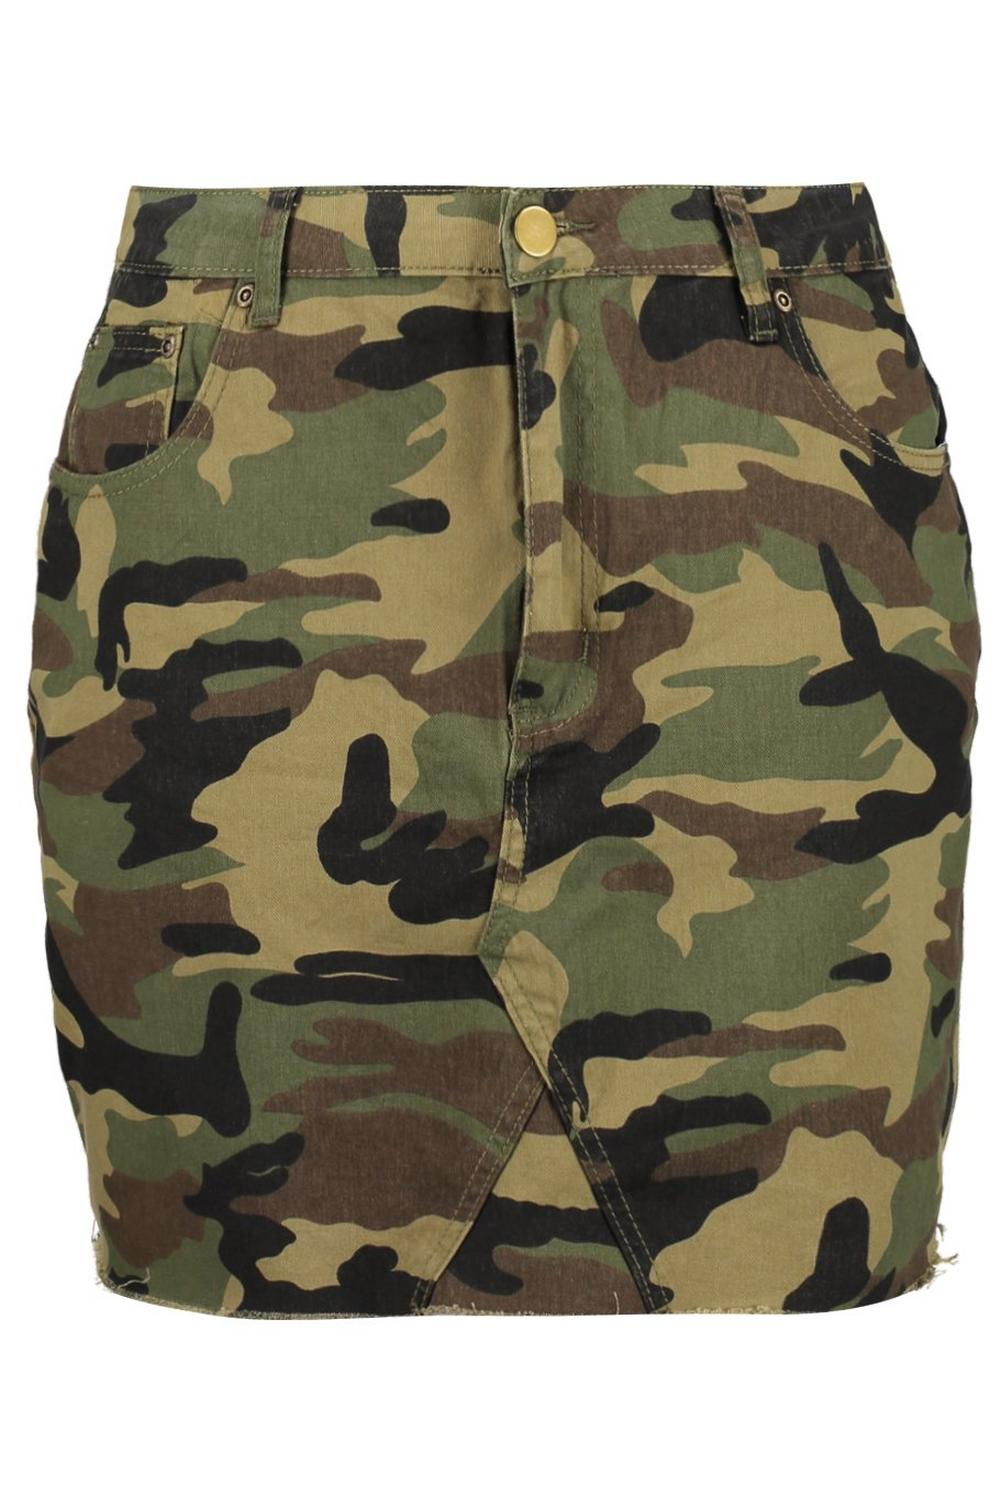 Plus Camo khaki Denim Denim khaki Plus Camo Skirt Plus Camo Skirt Denim 861qxEwr1a